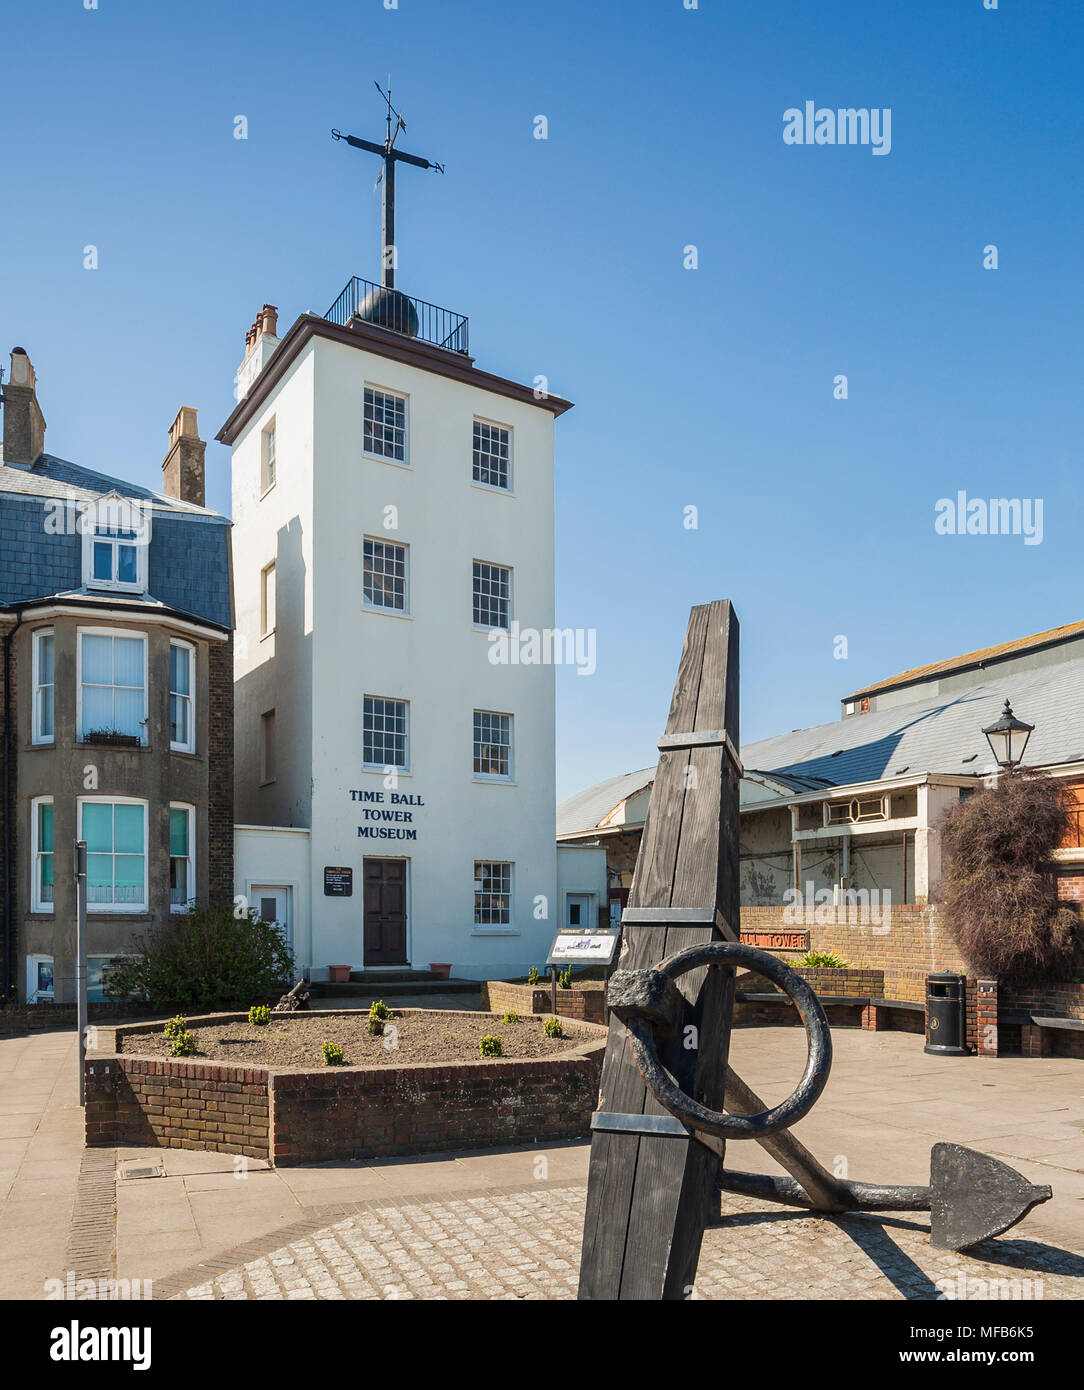 The Ball Tower Museum, Deal, Kent. - Stock Image